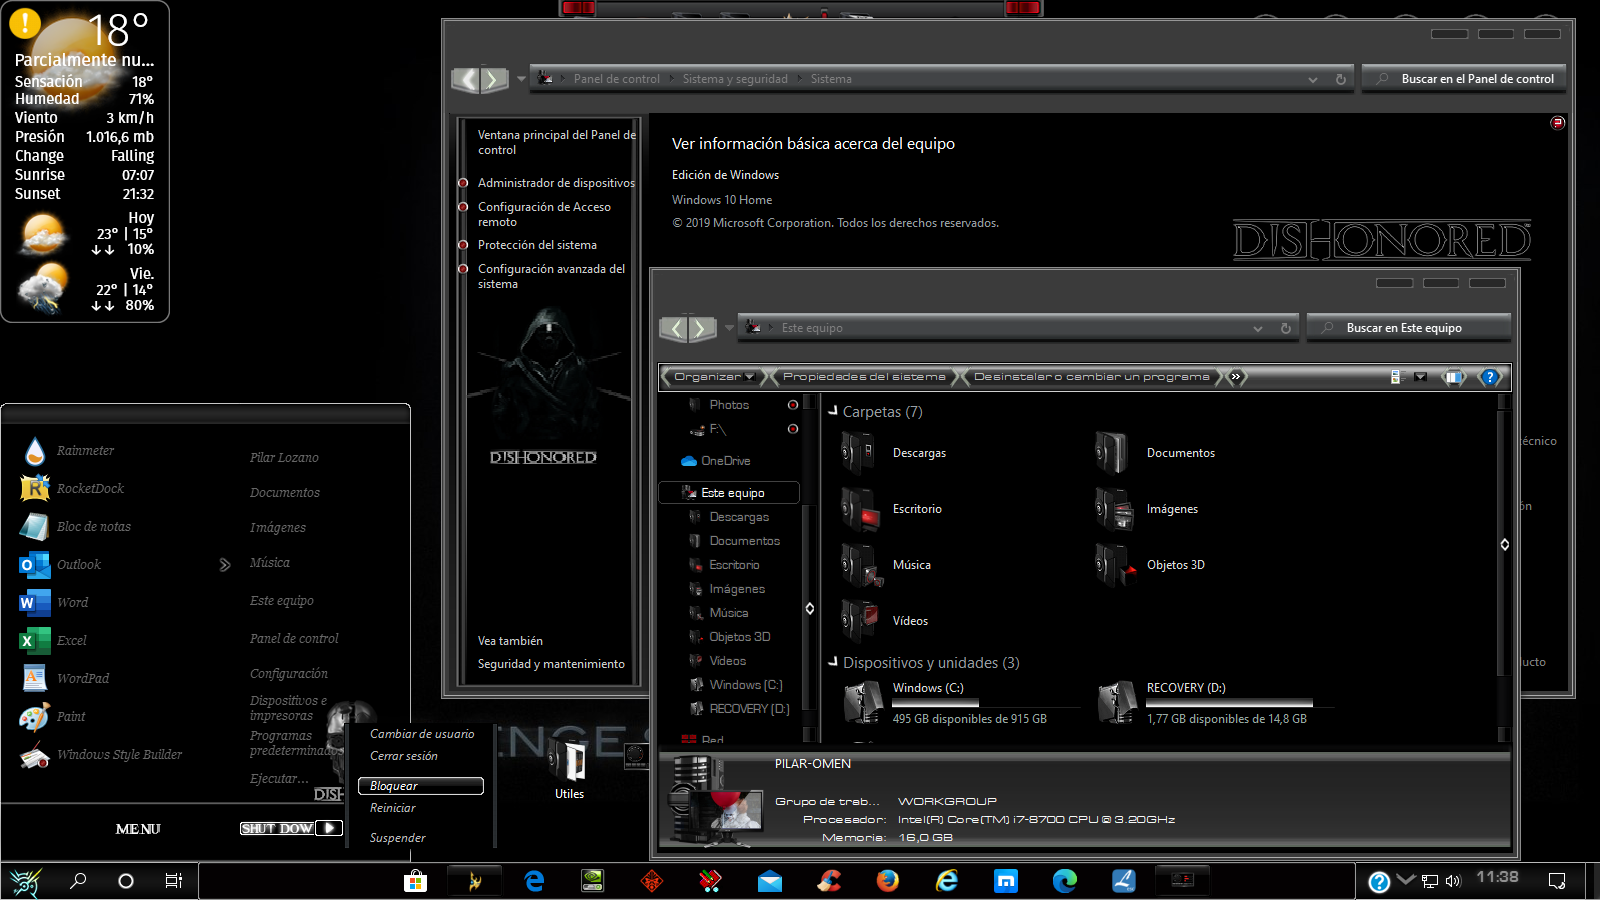 DISHONORED for Windows 10 Build 1903-21h2